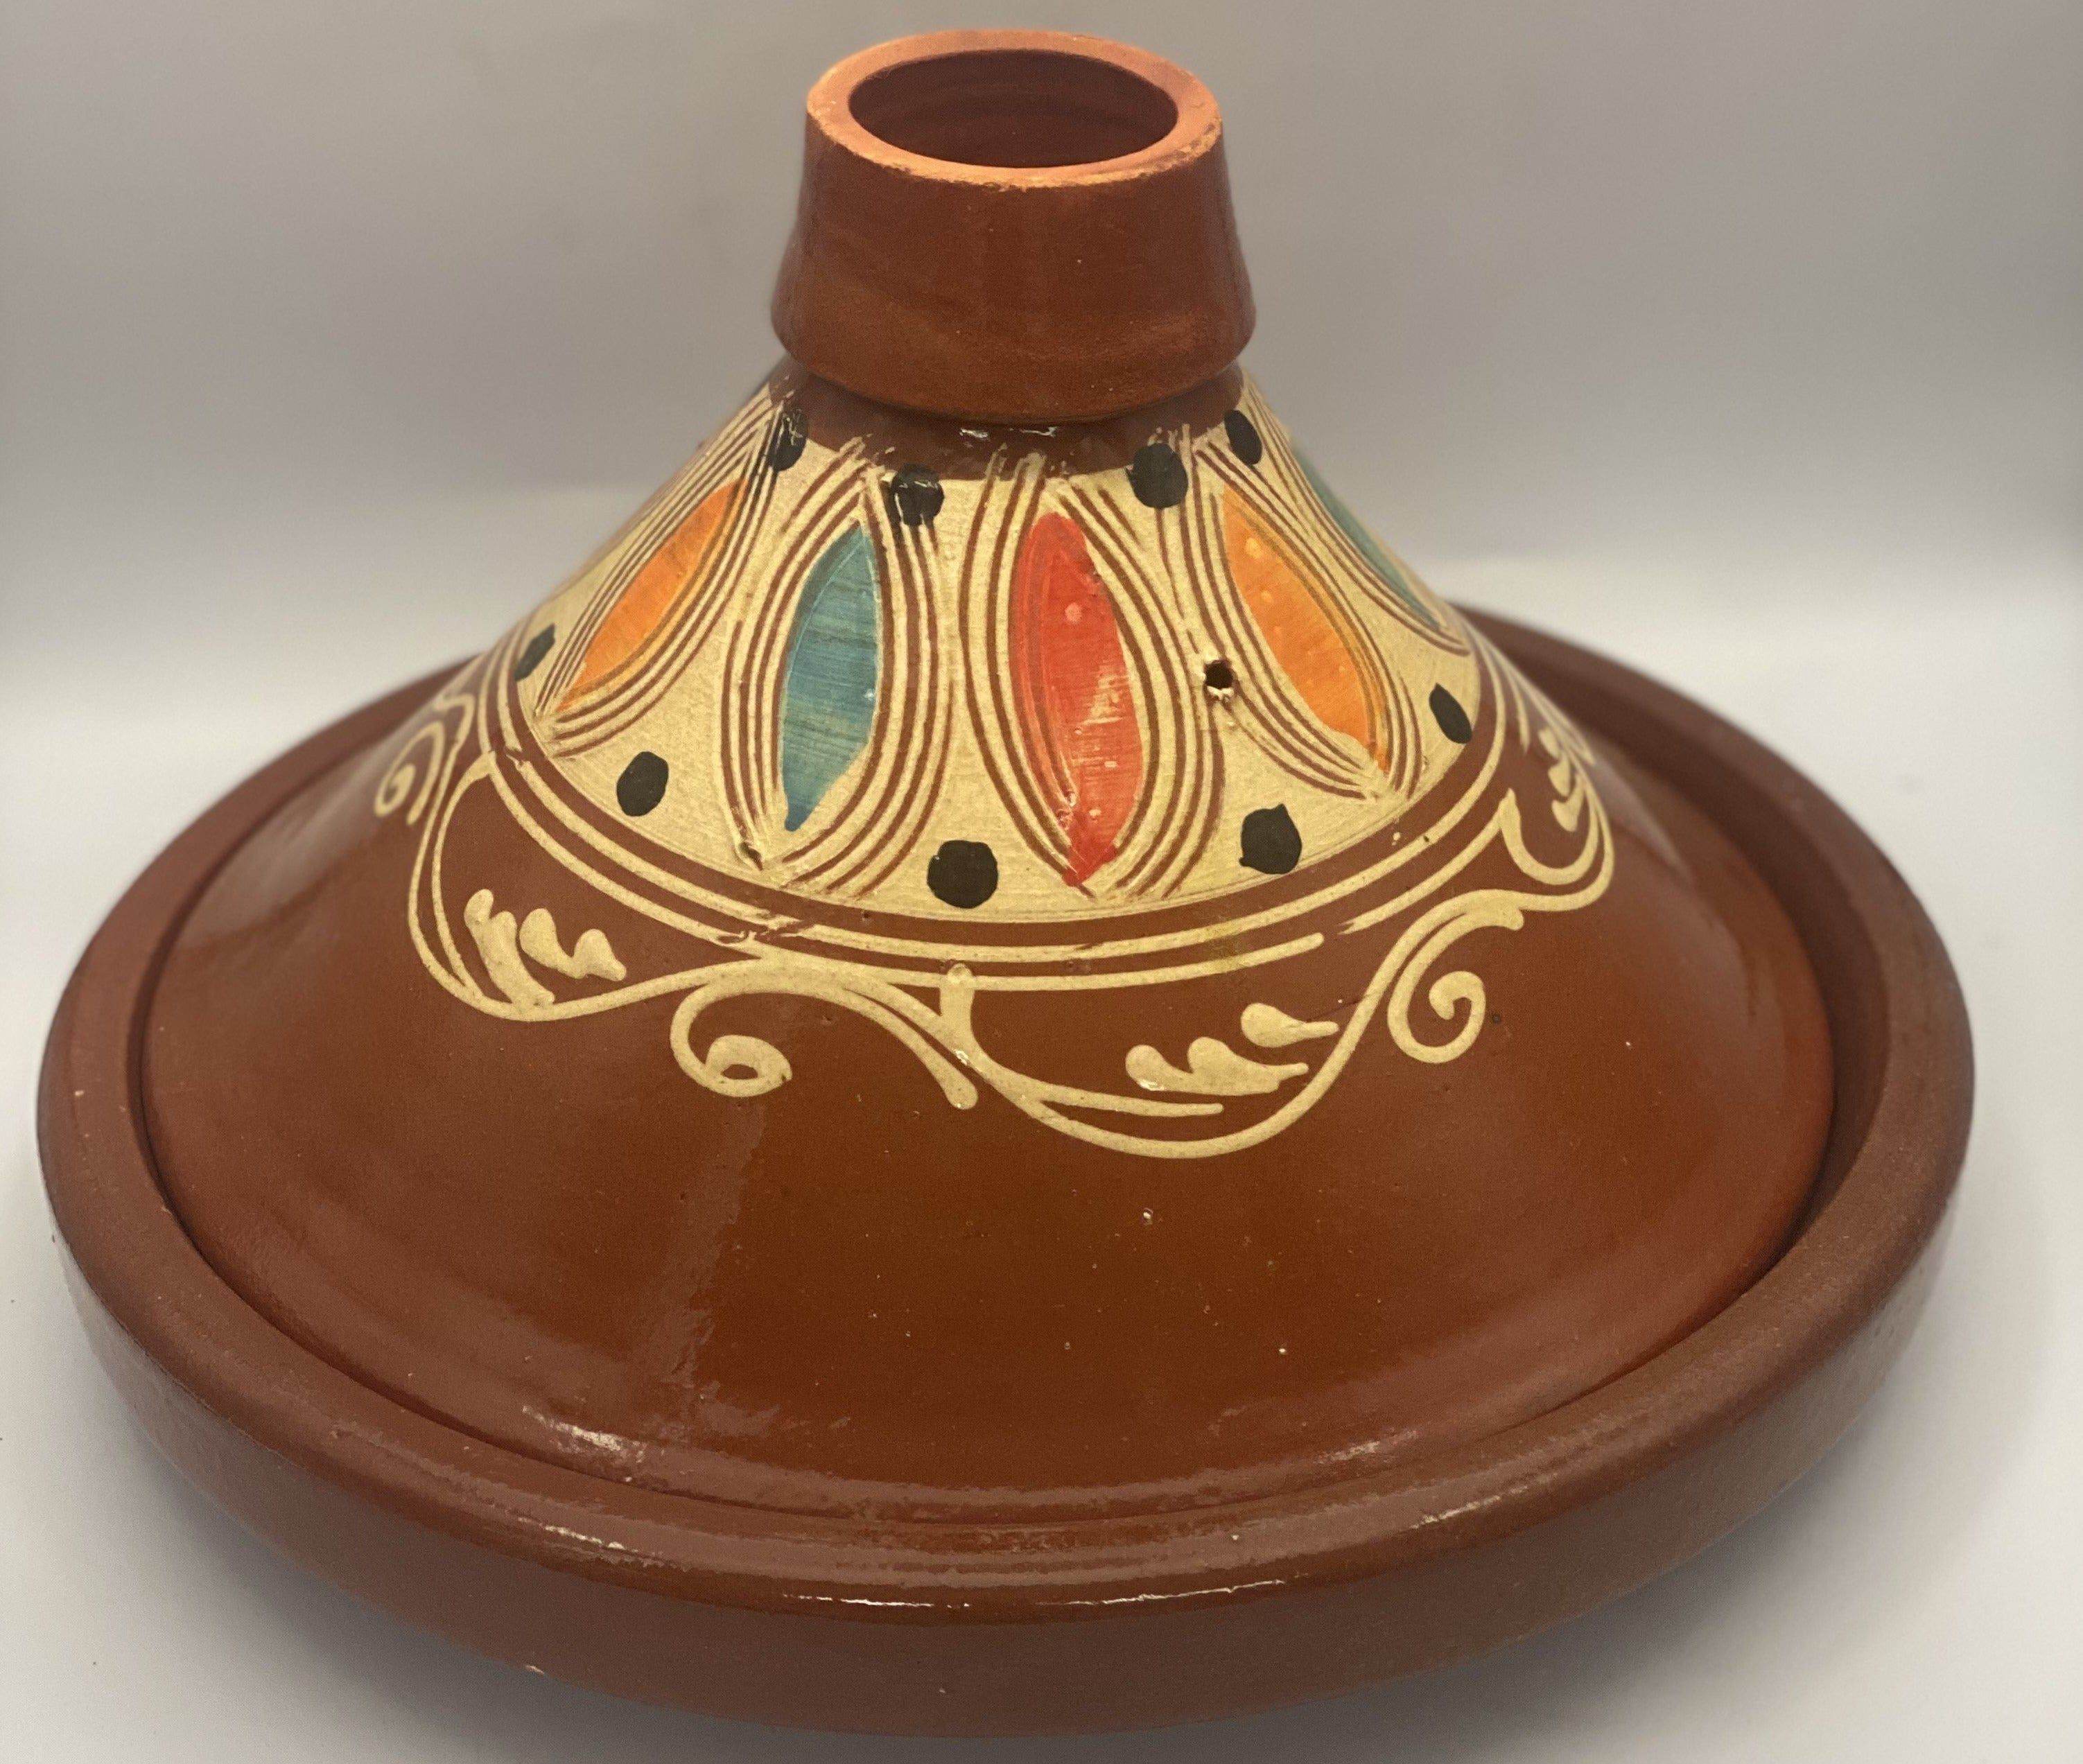 Tagine Traditionell 34 cm